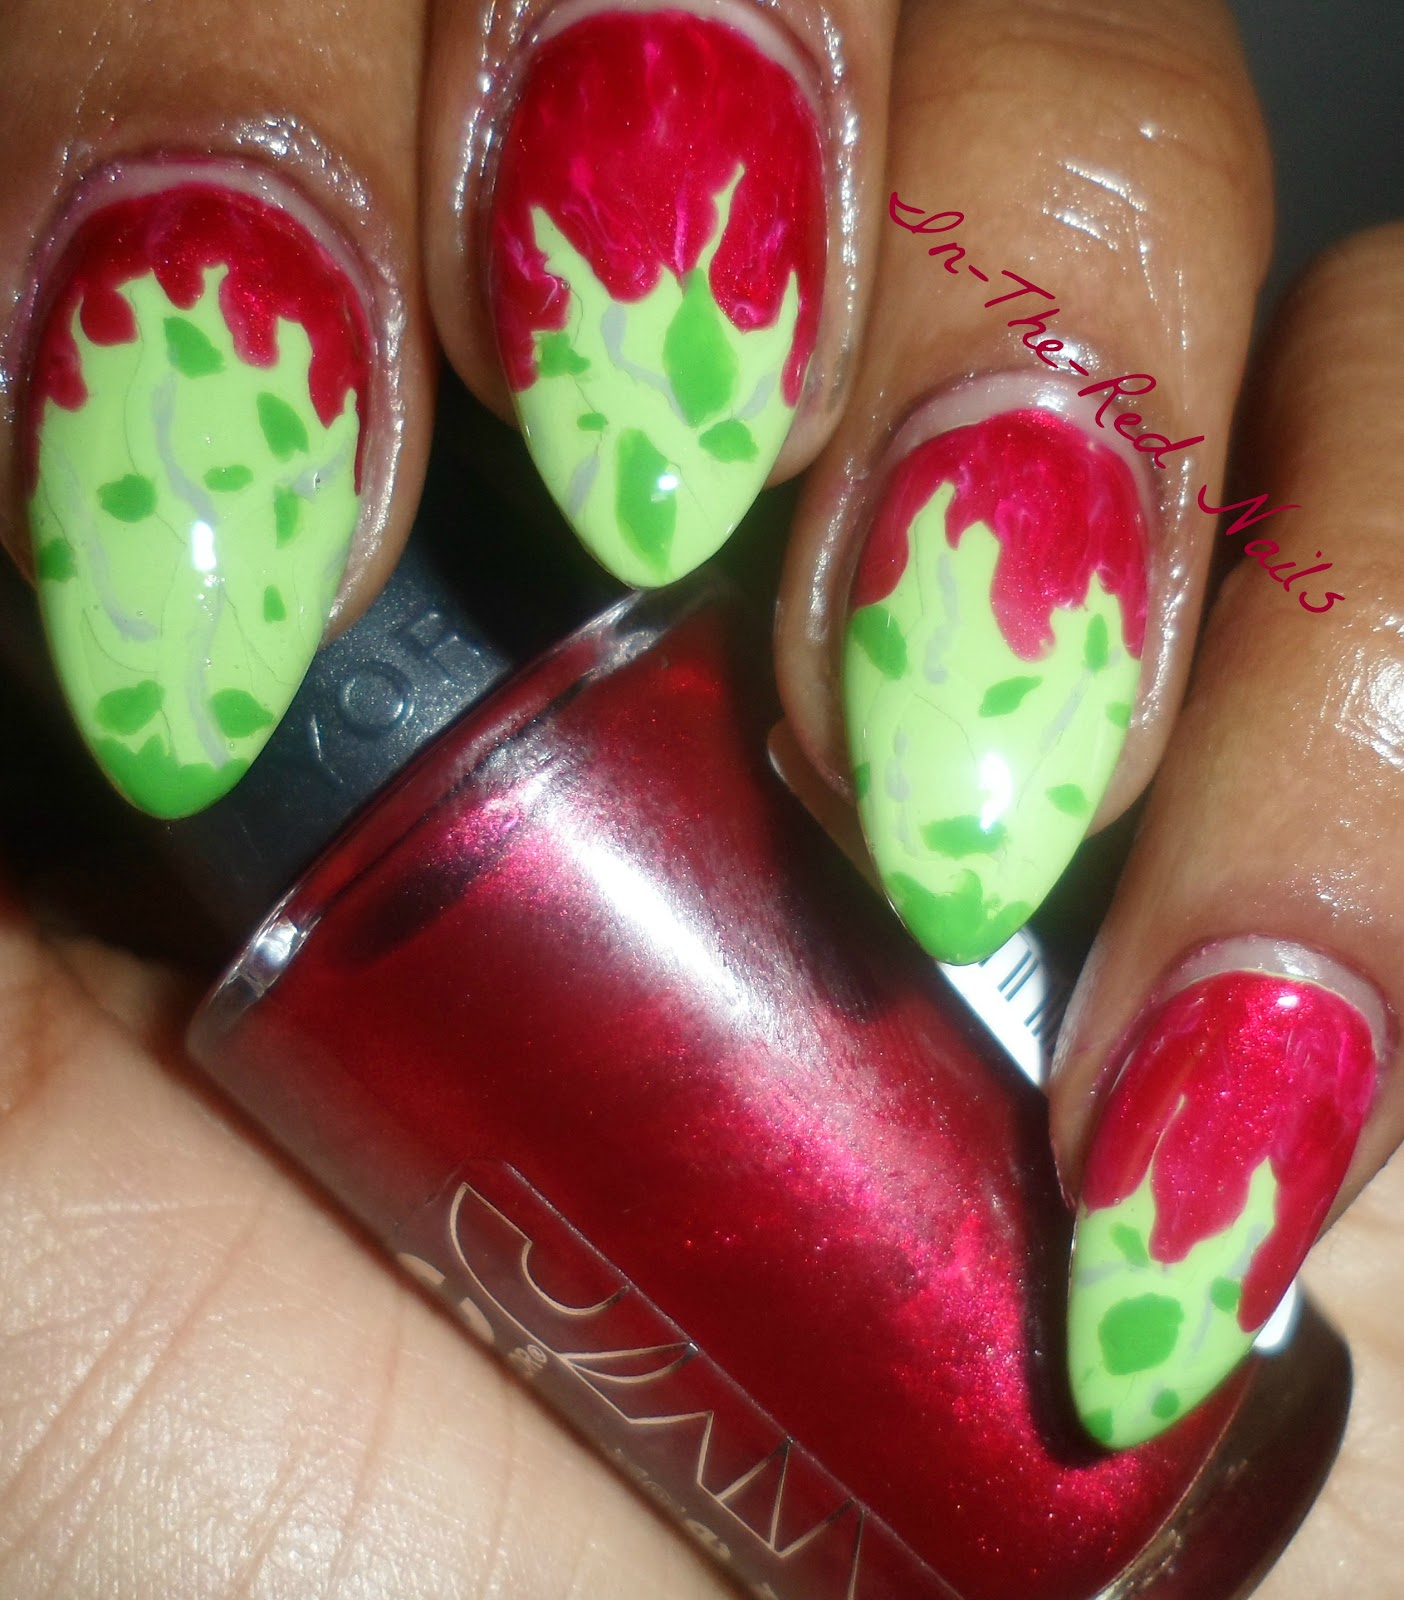 In-The-Red Nails: My Halloween Mani-Poison Ivy